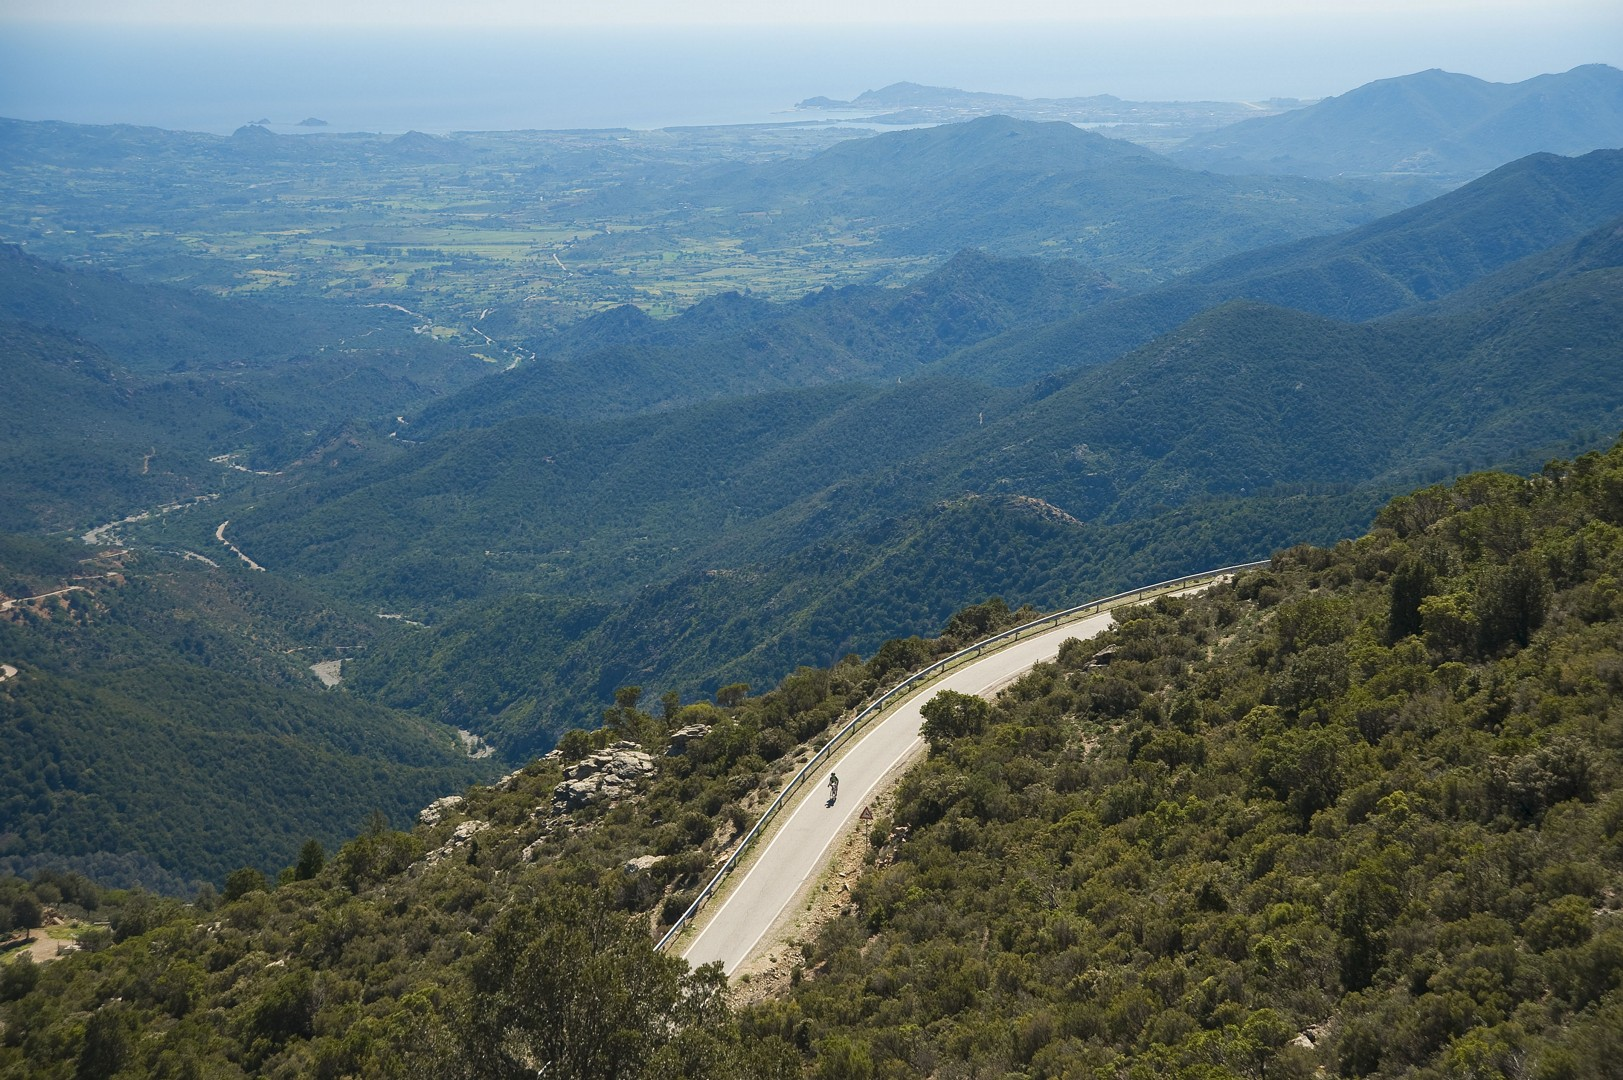 SP2493.jpg - Italy - Sardinia - Mountain Explorer - Guided Road Cycling Holiday - Road Cycling